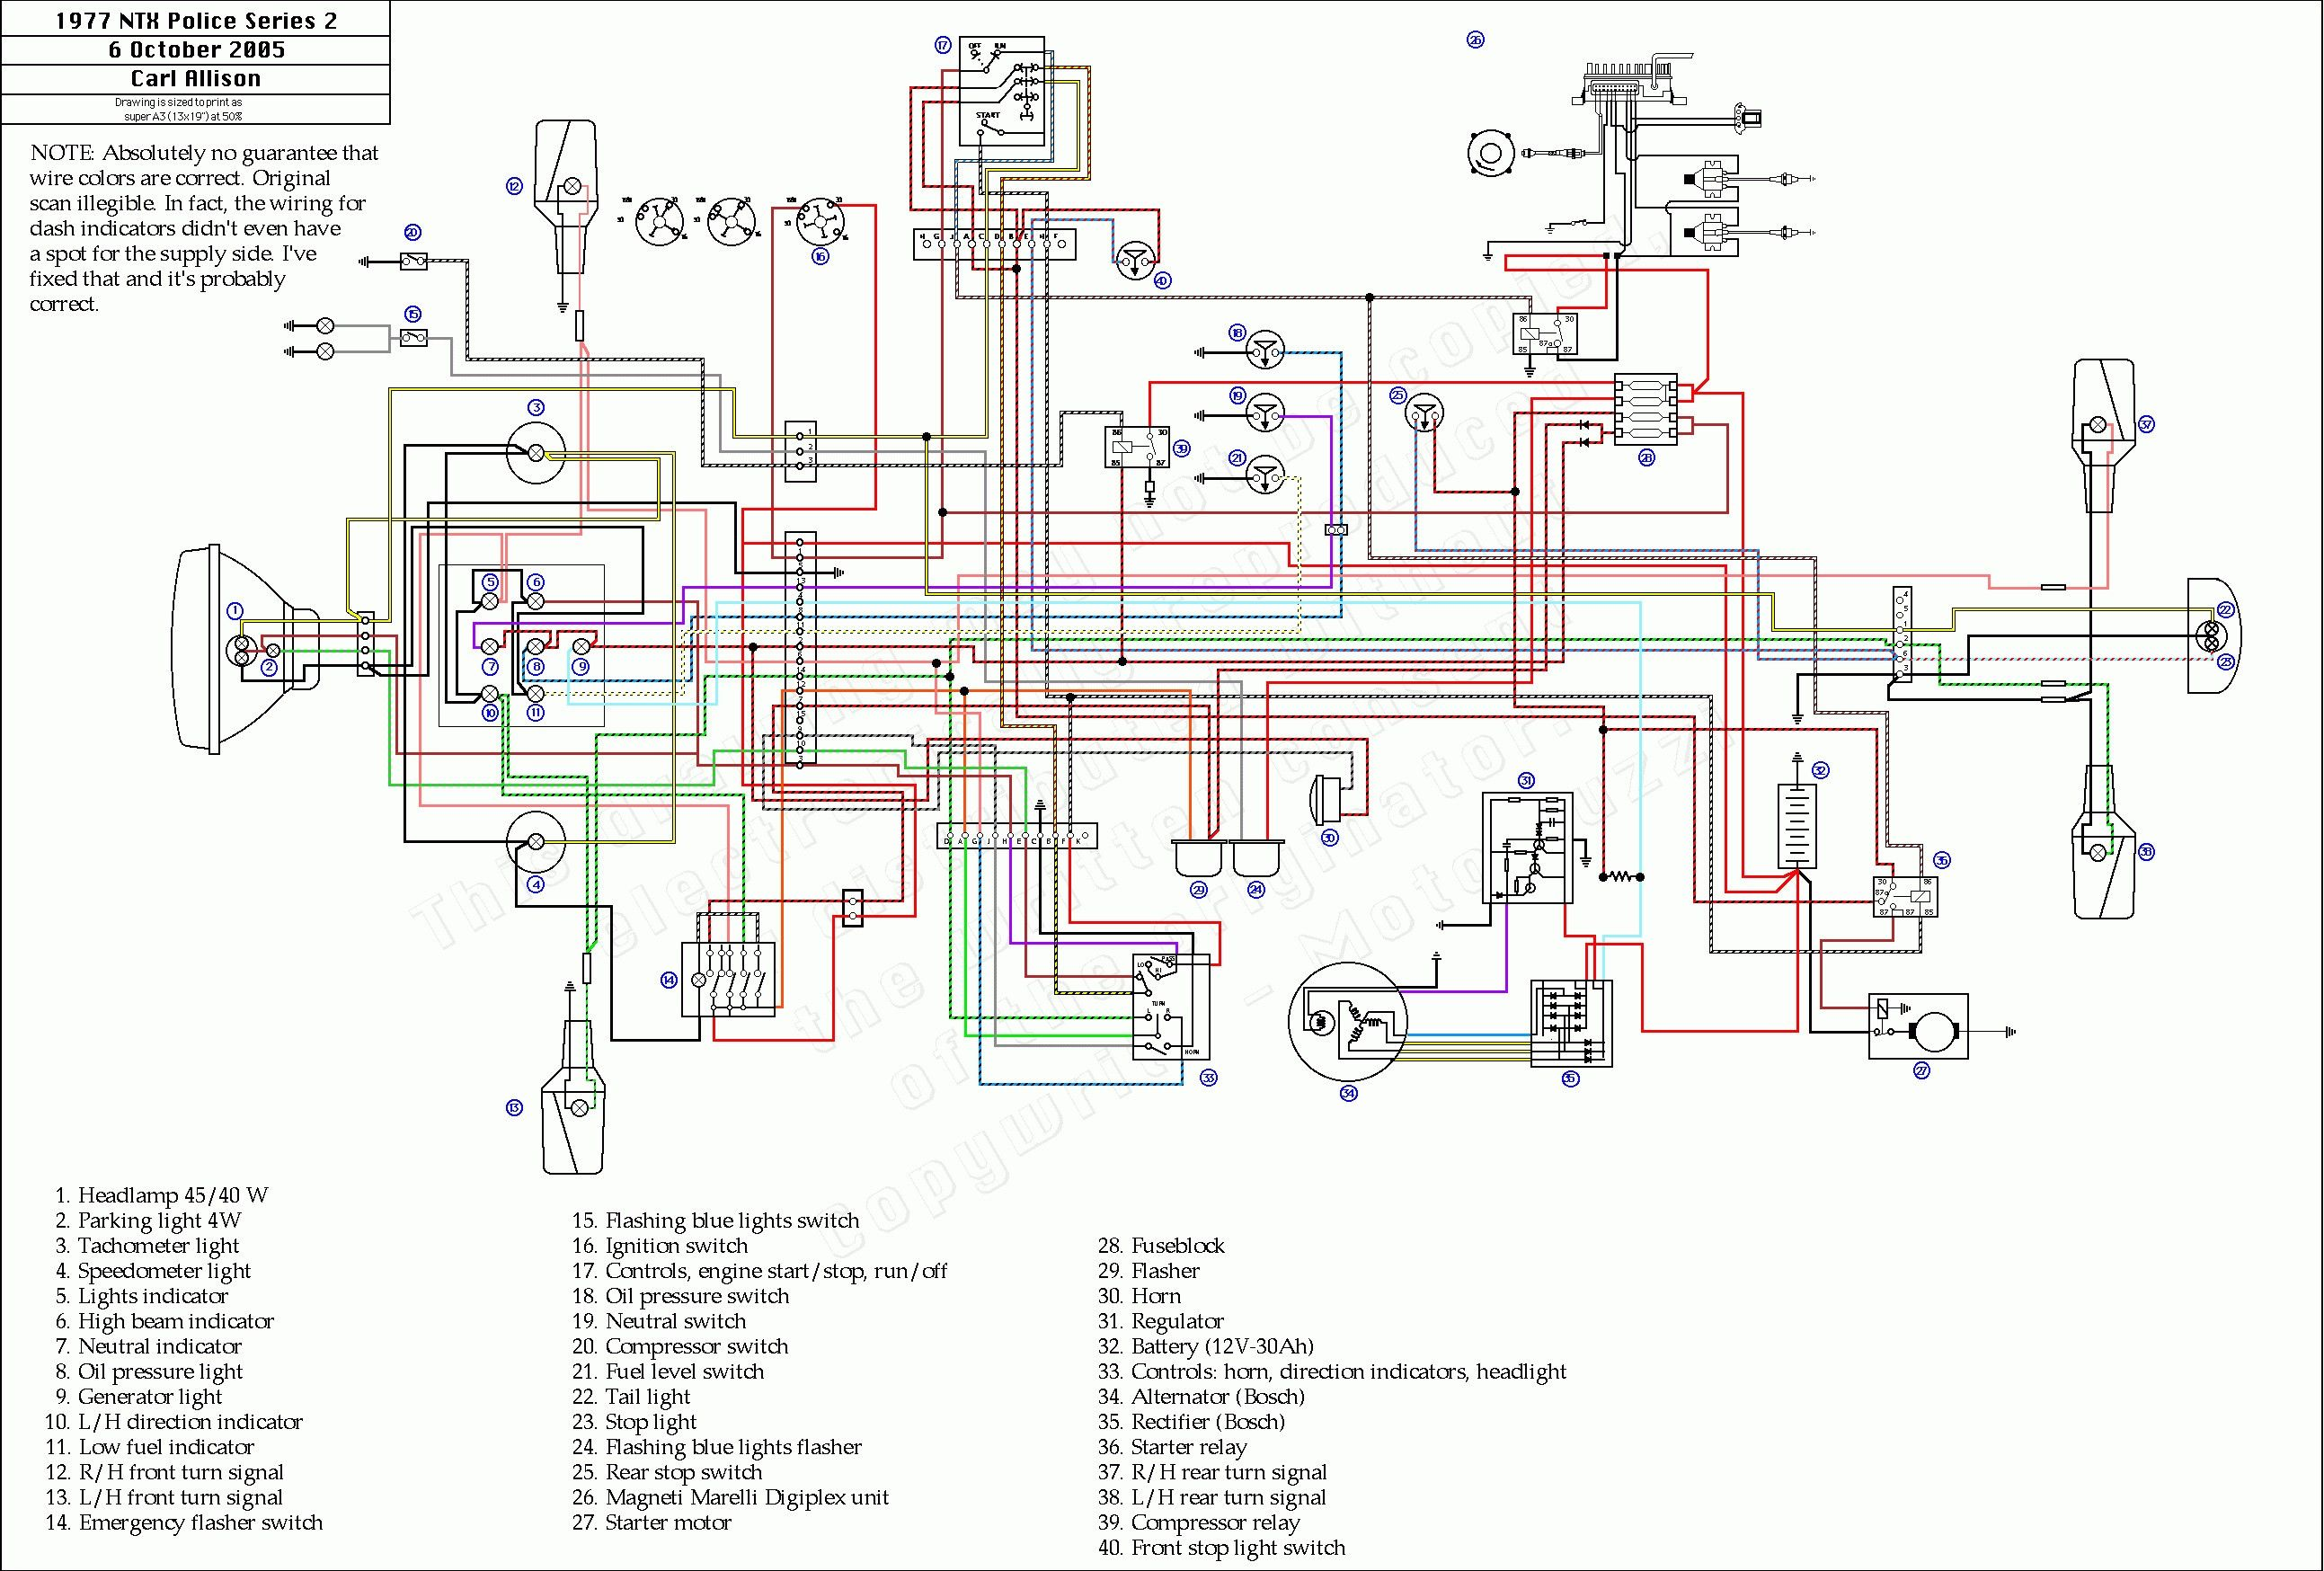 New Wiring Diagram for A Bosch Alternator #diagrams ... on general motors alternator wiring, valeo alternator wiring, kia alternator wiring, mazda alternator wiring, cummins alternator wiring, hitachi alternator wiring, ford alternator wiring, delco alternator wiring, mitsubishi alternator wiring, caterpillar alternator wiring, leece neville alternator wiring, volkswagen alternator wiring, john deere alternator wiring, sev marchal alternator wiring,